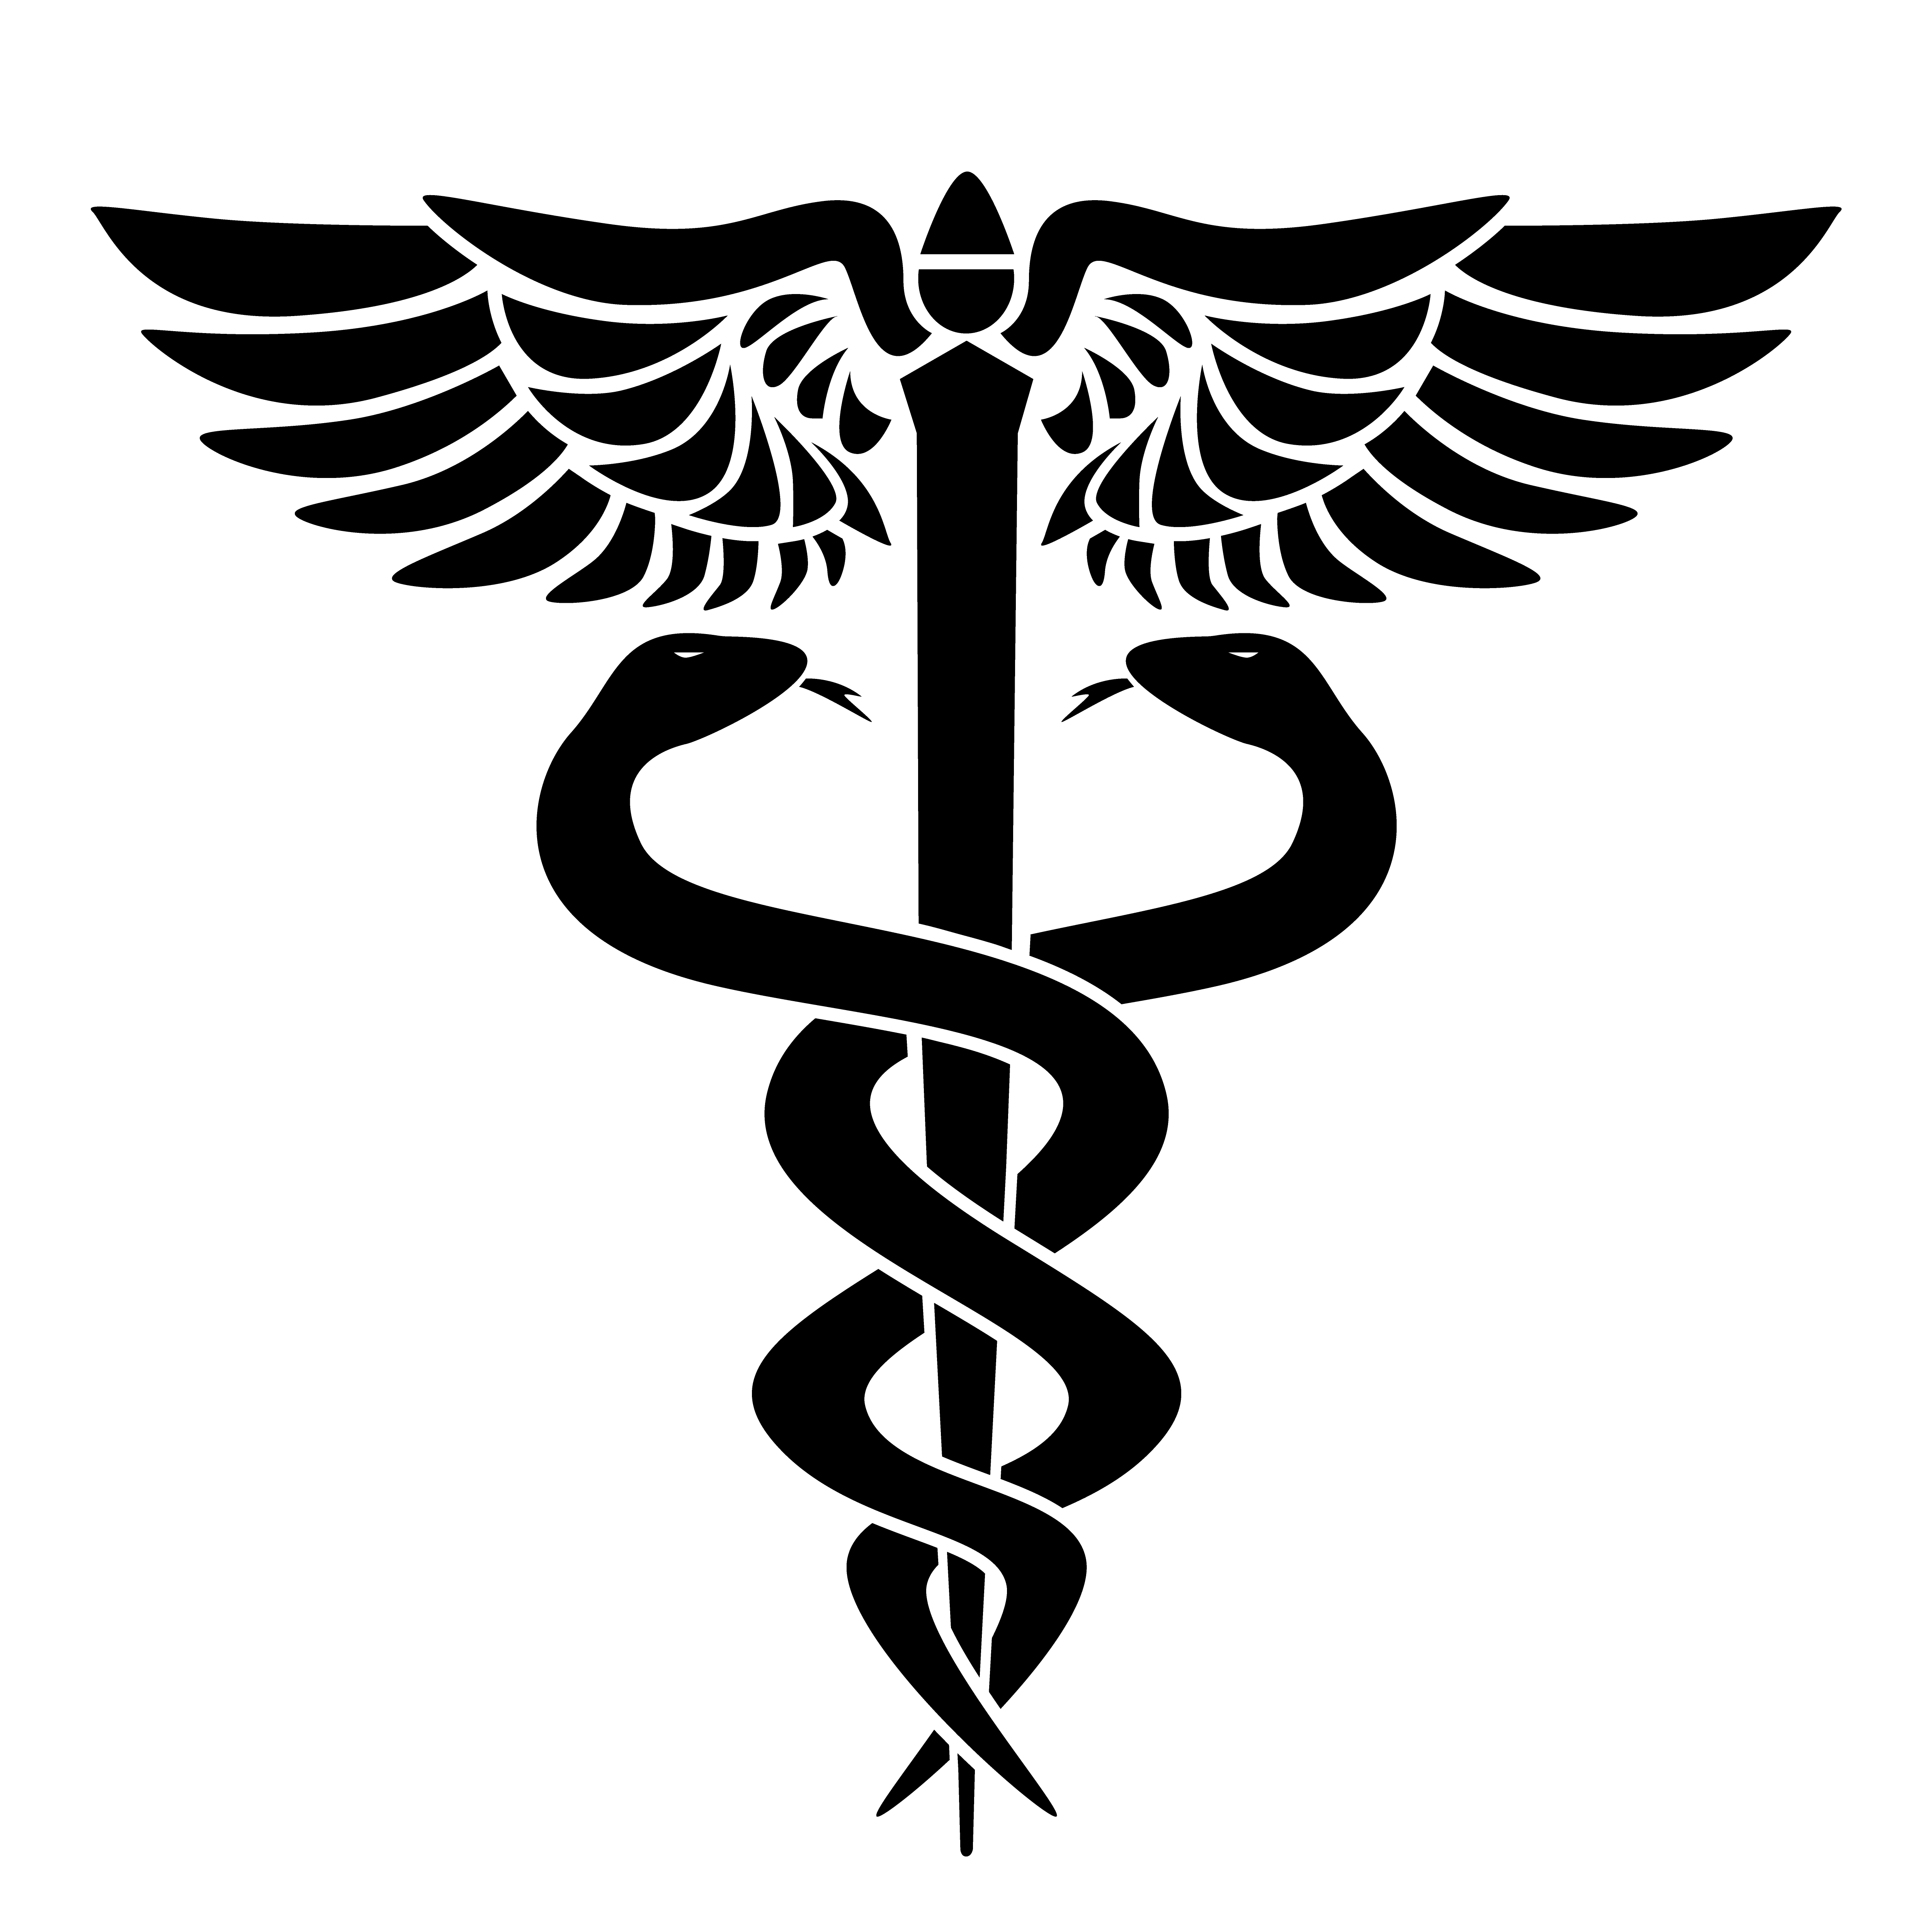 Caduceus medical symbol, with two snakes, staff and wings ...